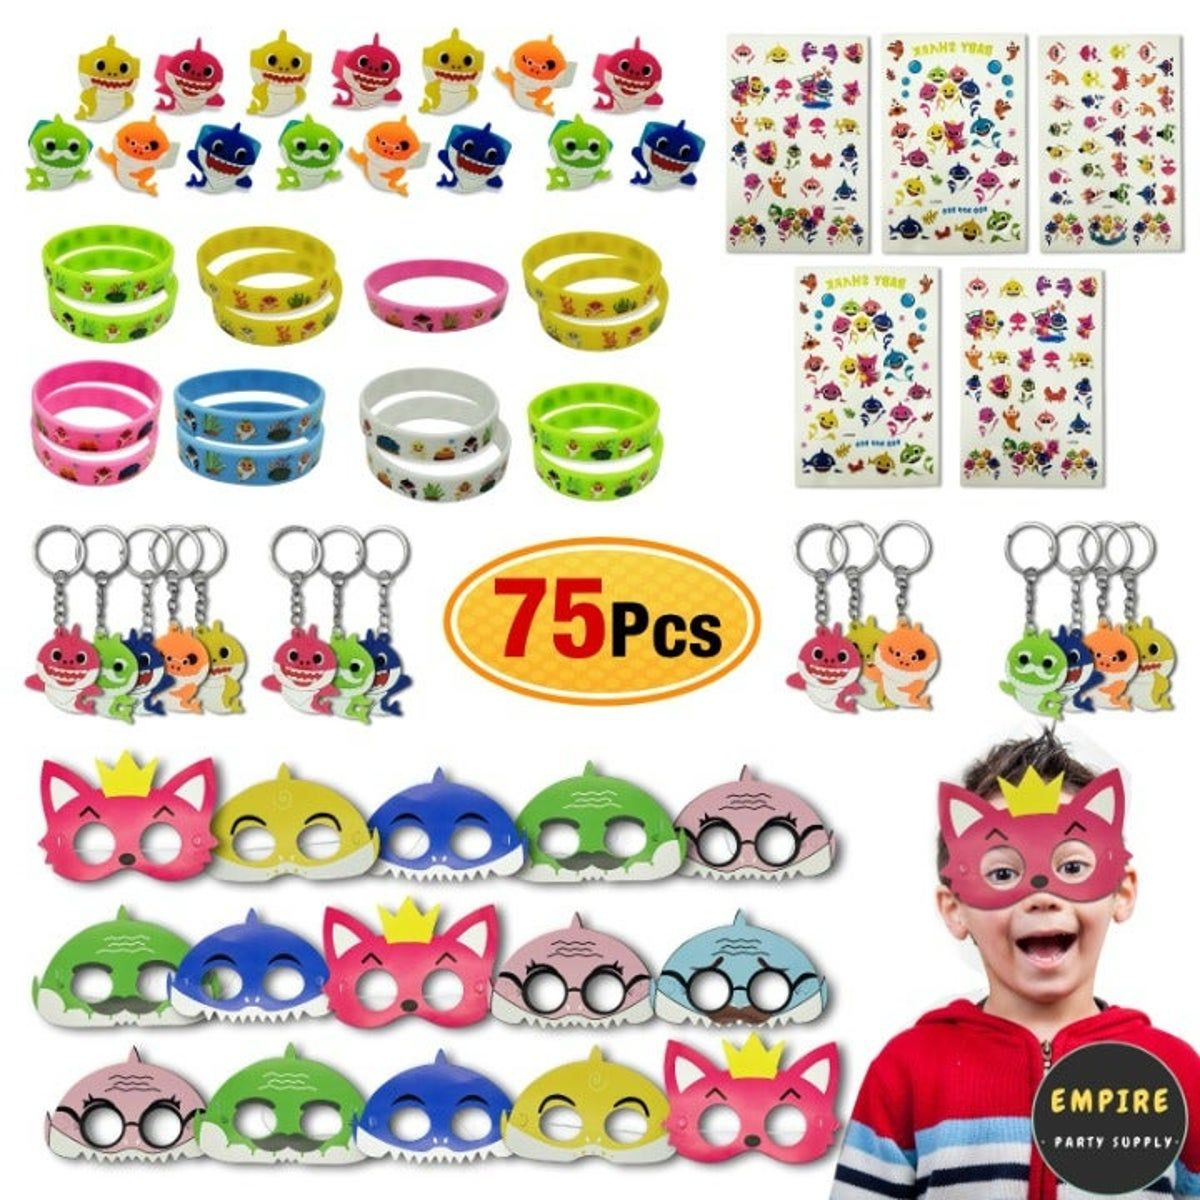 Pin by Noh on Party favors for kids birthday in 2020